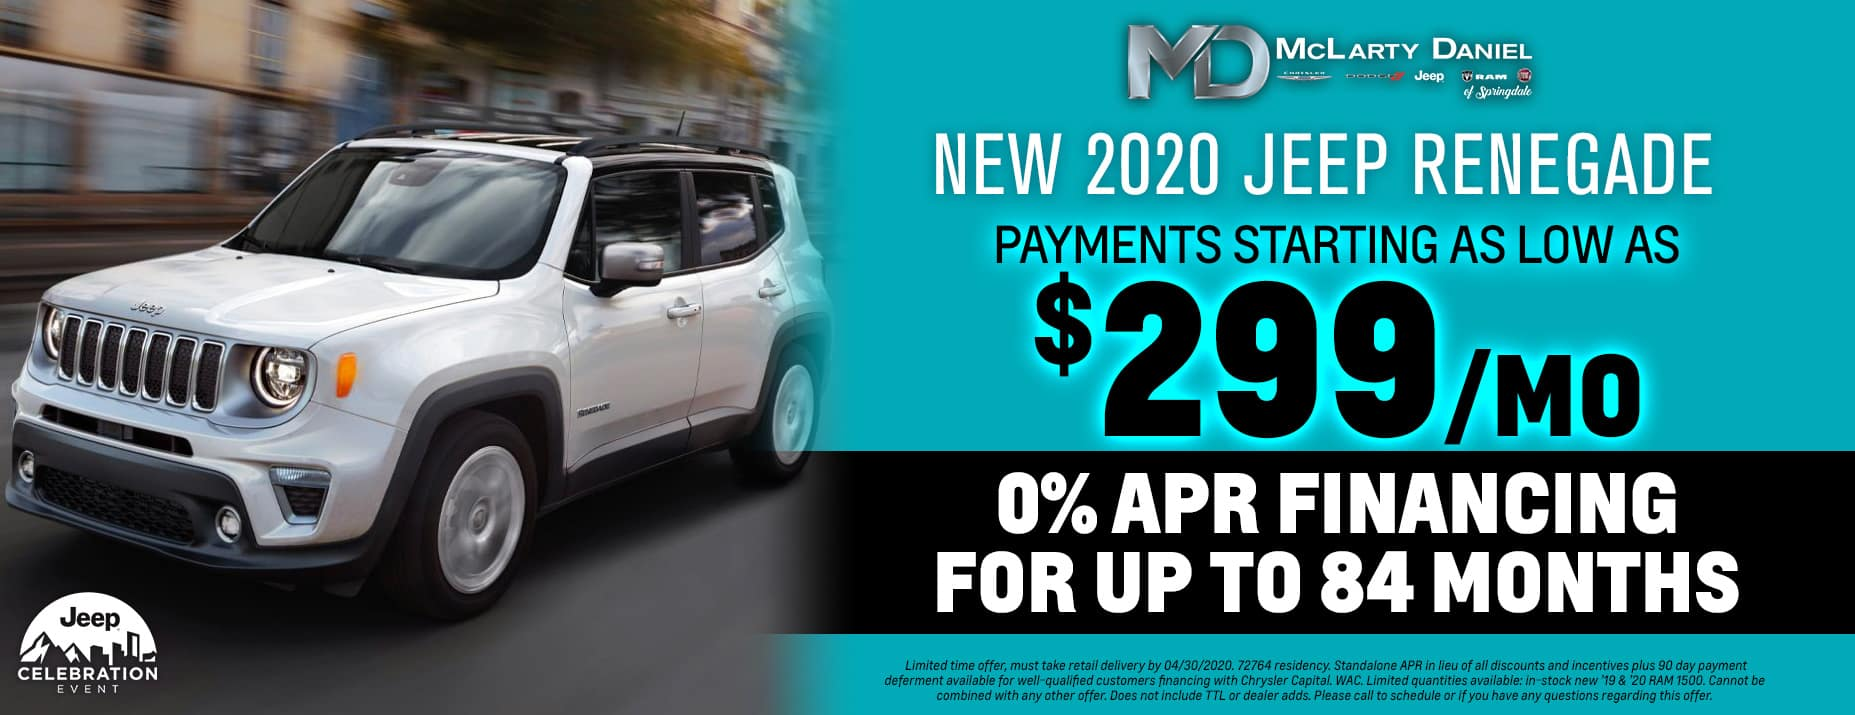 Get 0% for 84 months on 2020 Jeep Renegade - payments starting as low as $299/mo!